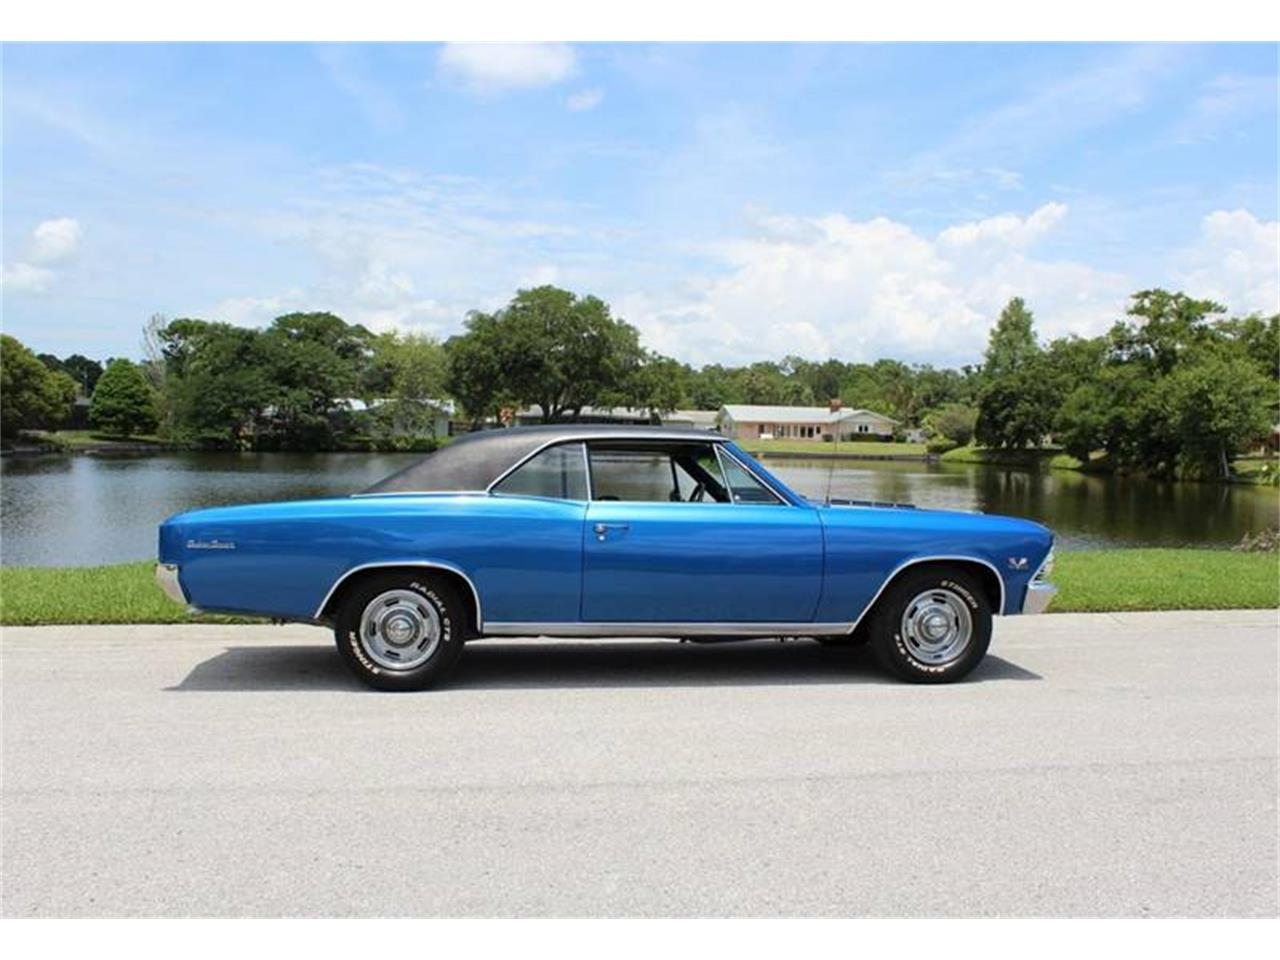 For Sale: 1966 Chevrolet Chevelle in Clearwater, Florida